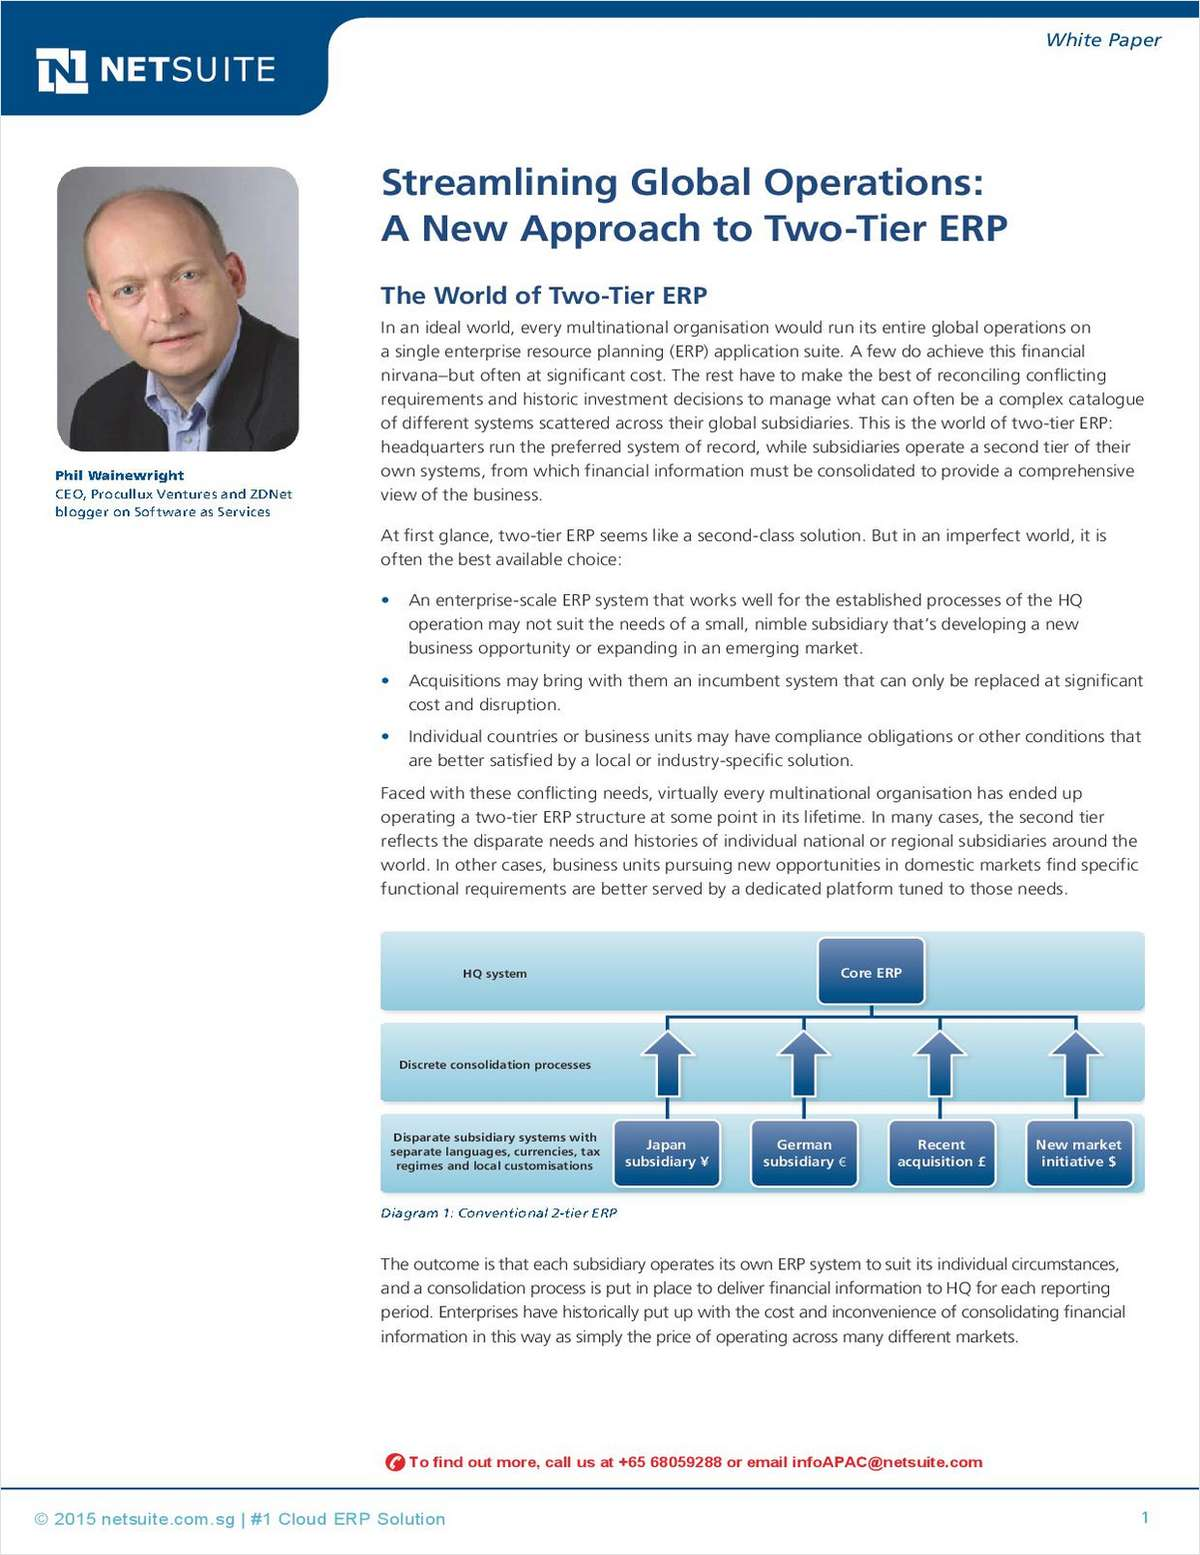 Streamlining Global Operations: A New Approach to Two-Tier ERP